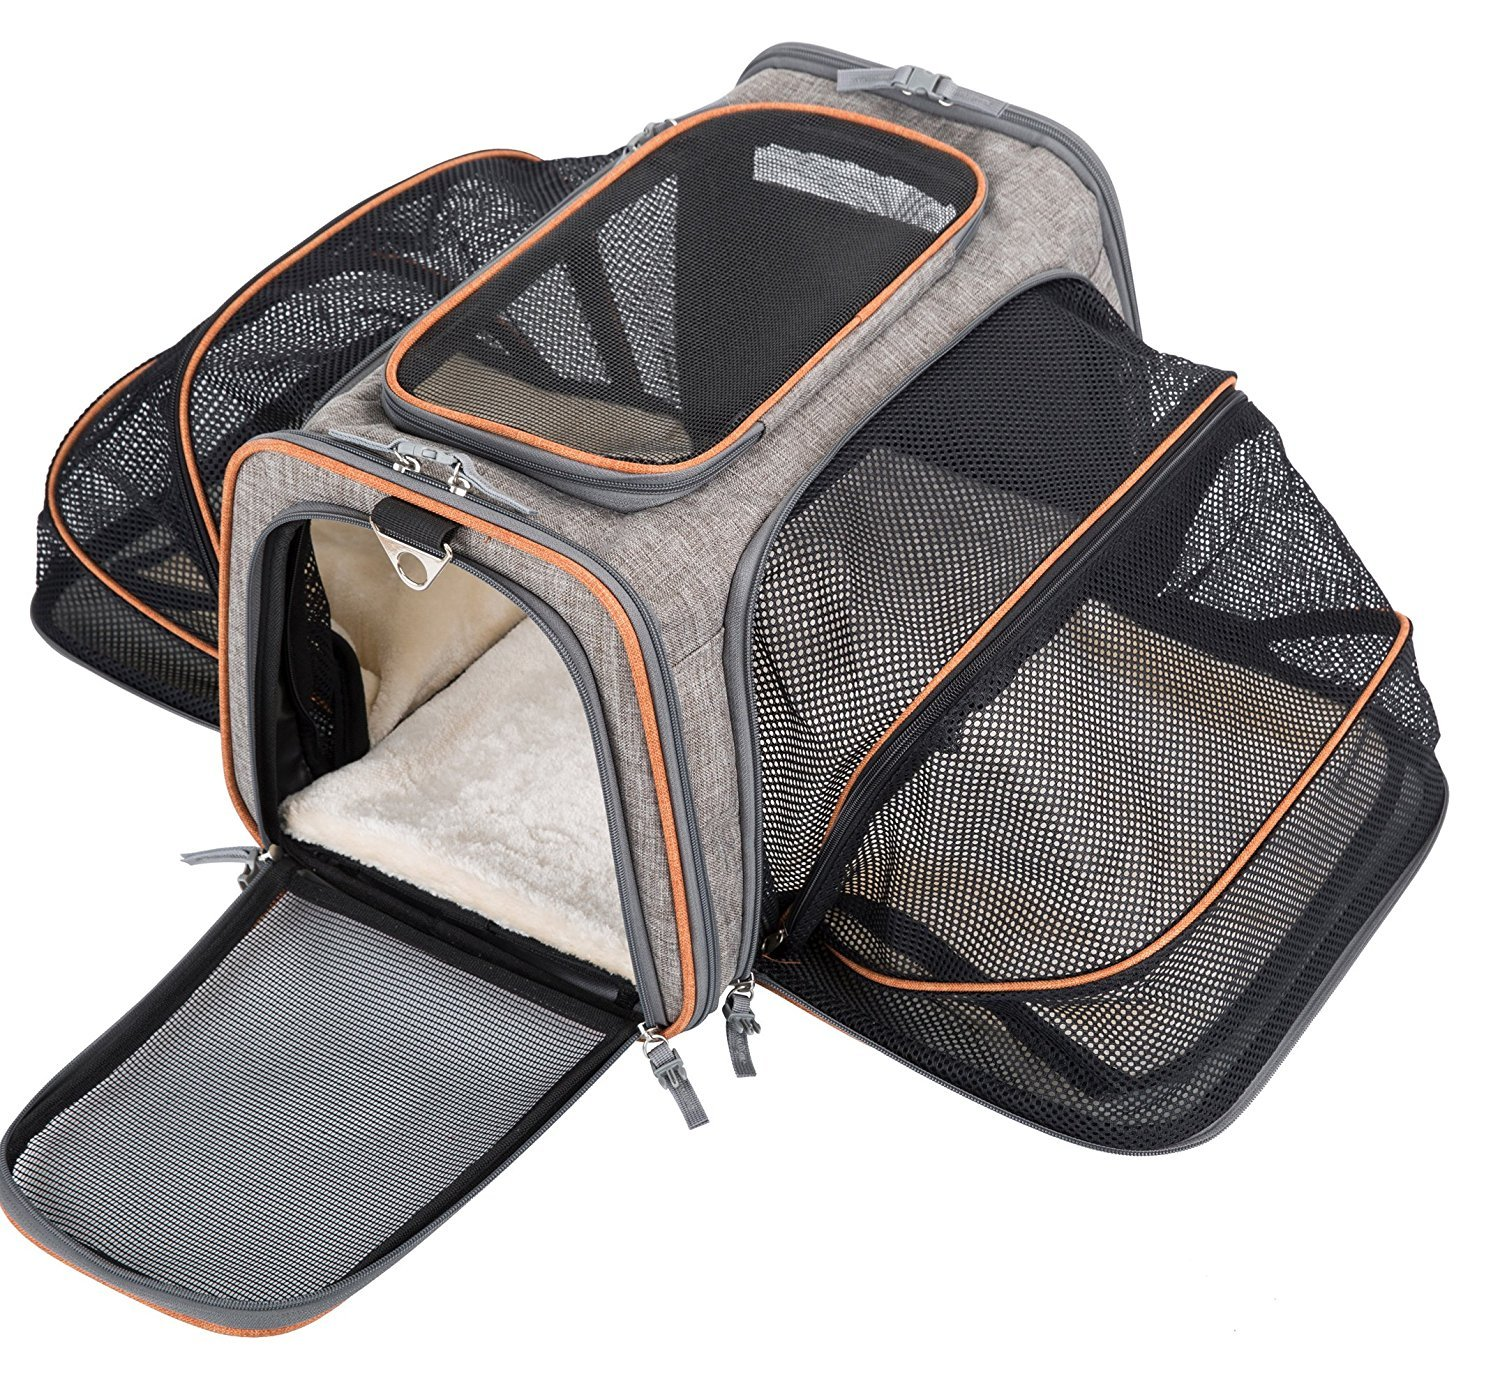 MOVEPEAK Pet Carrier for Dogs,Cats,Puppy with Airline Approved - Expandable Soft sided Pet Tote Carriers Bags,Folding Pets Kitten Totes Cats Carriers Bags,Portable Pet Supply Carrier Bags For Puppies Ltd.